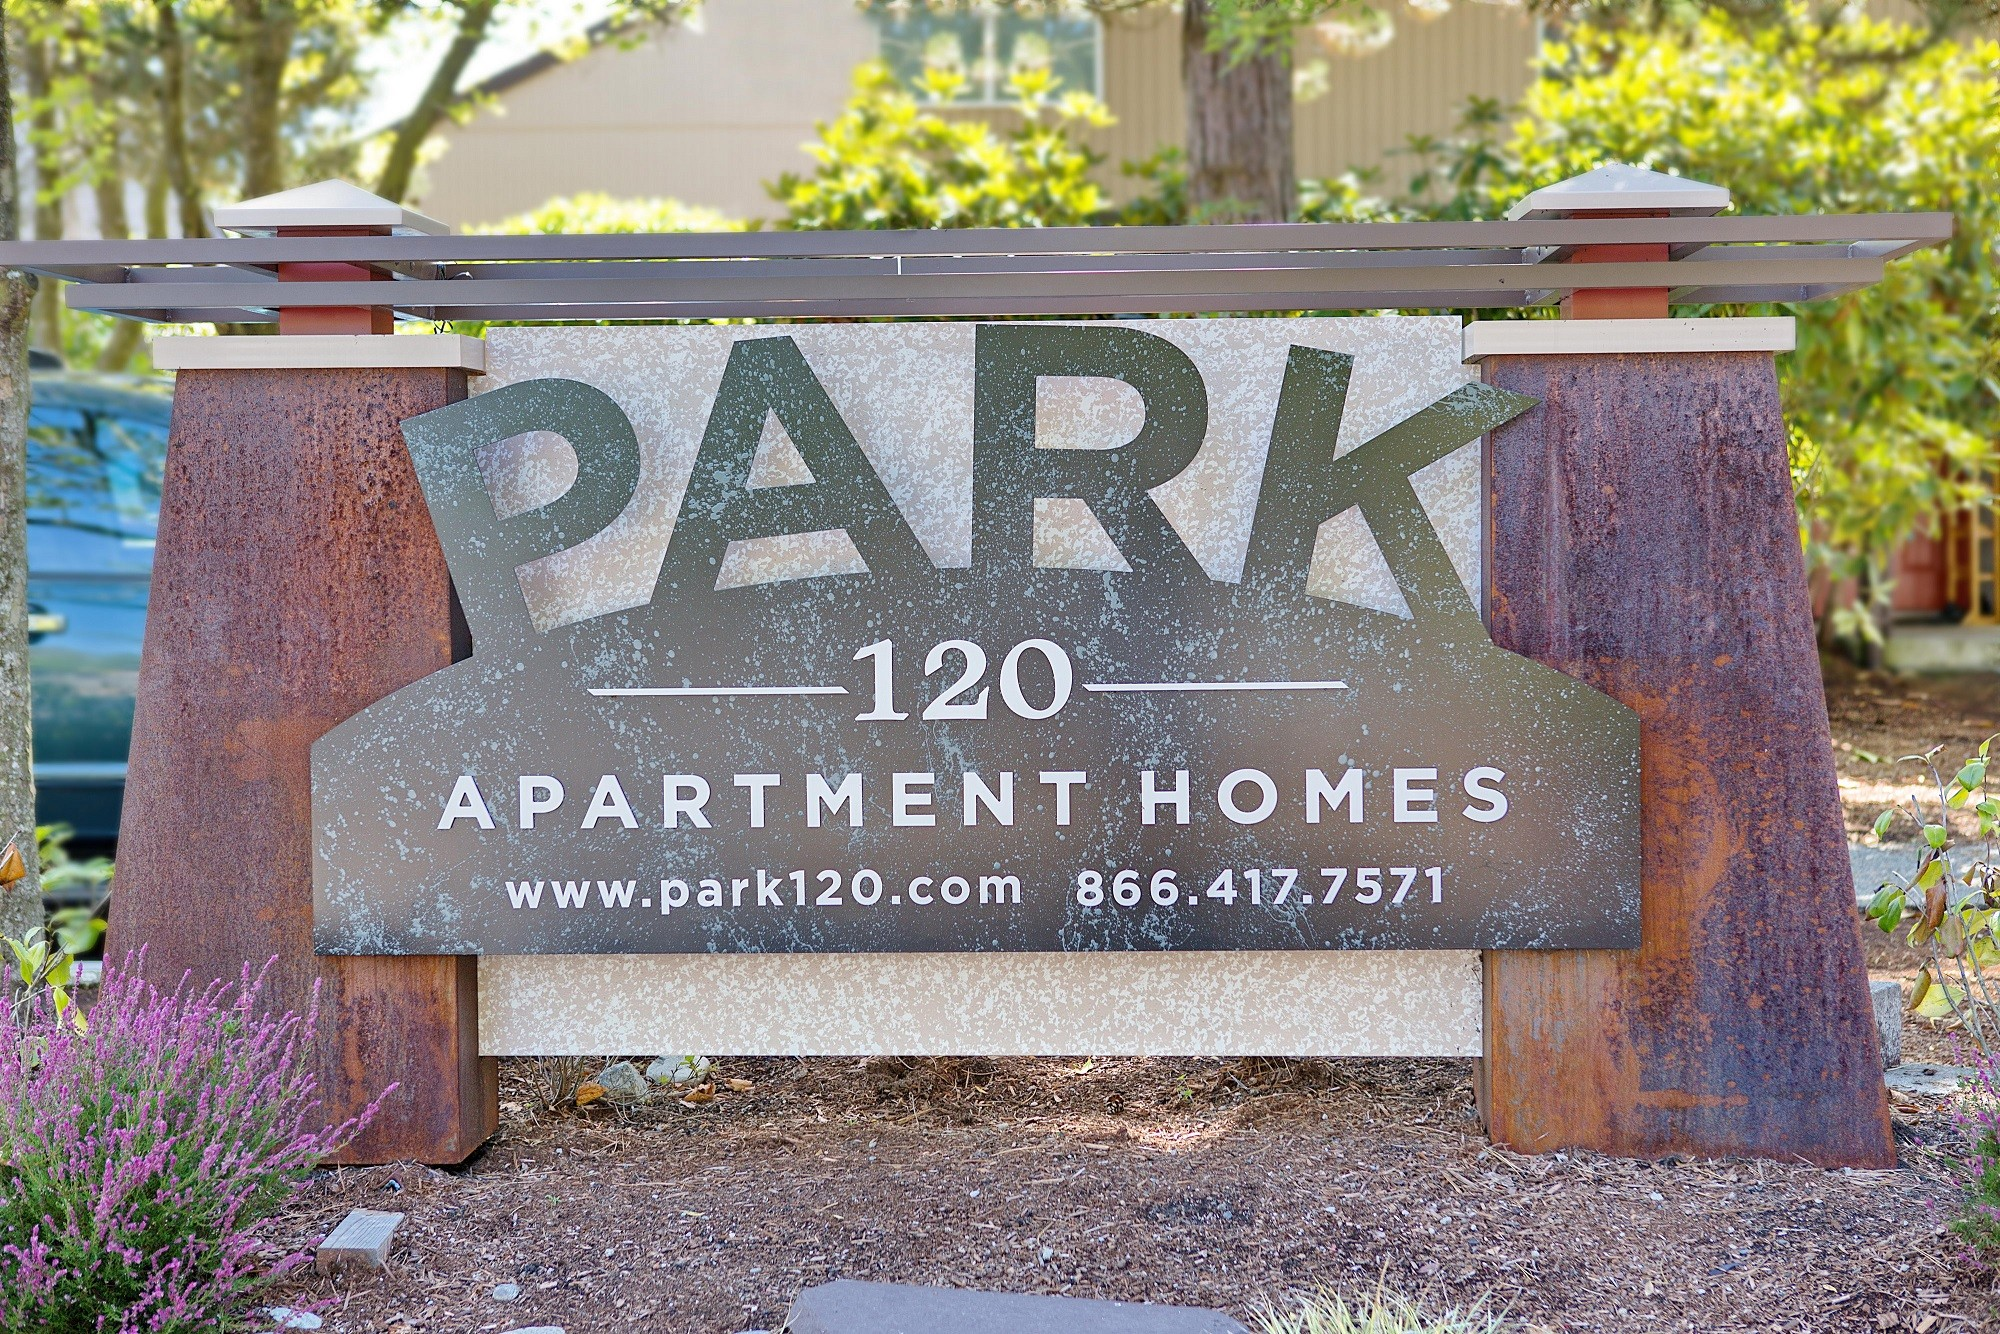 58 Apartments in Everett WA AVAIL now